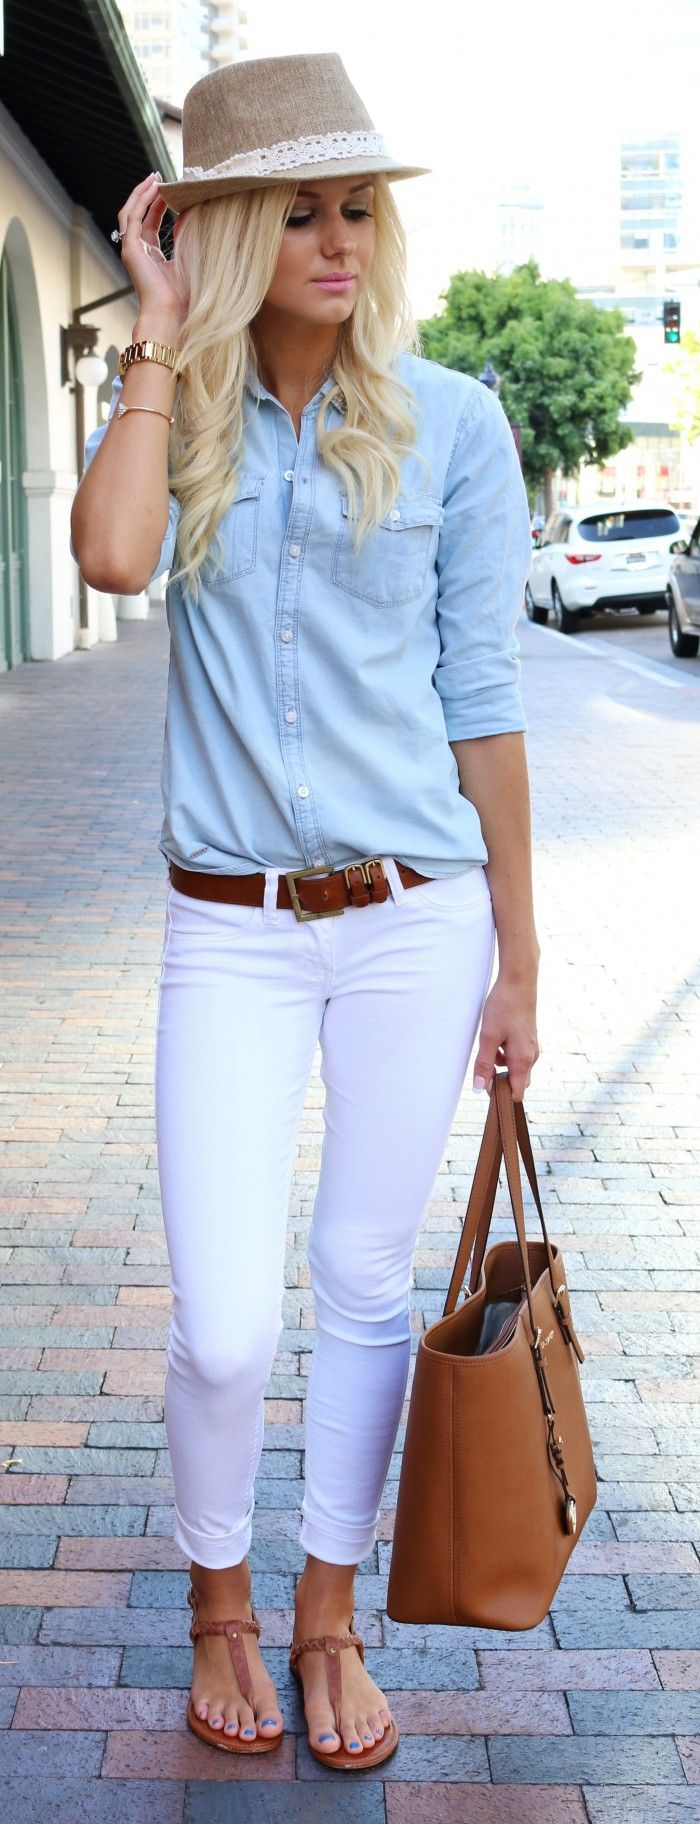 17 Best ideas about White Jeans Outfit on Pinterest | White pants ...